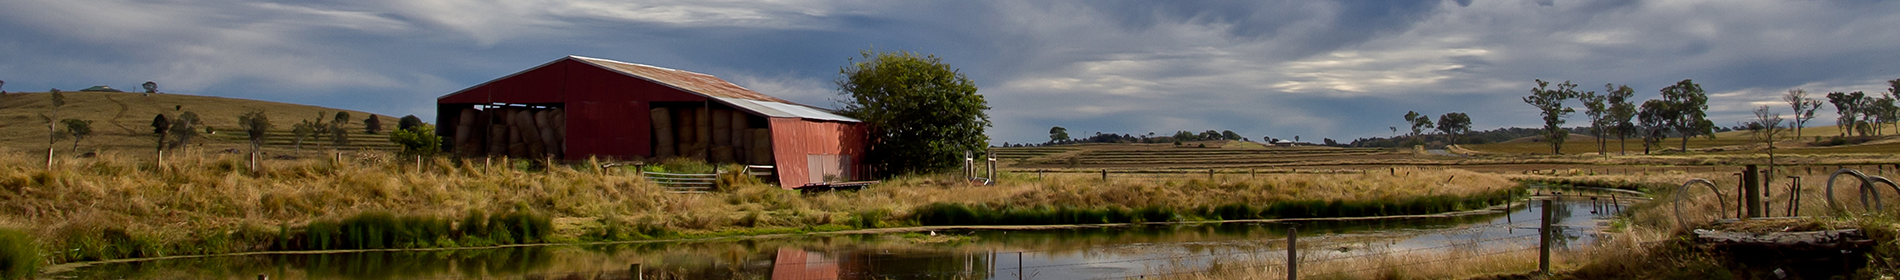 Panarama image of a farm shed and dam